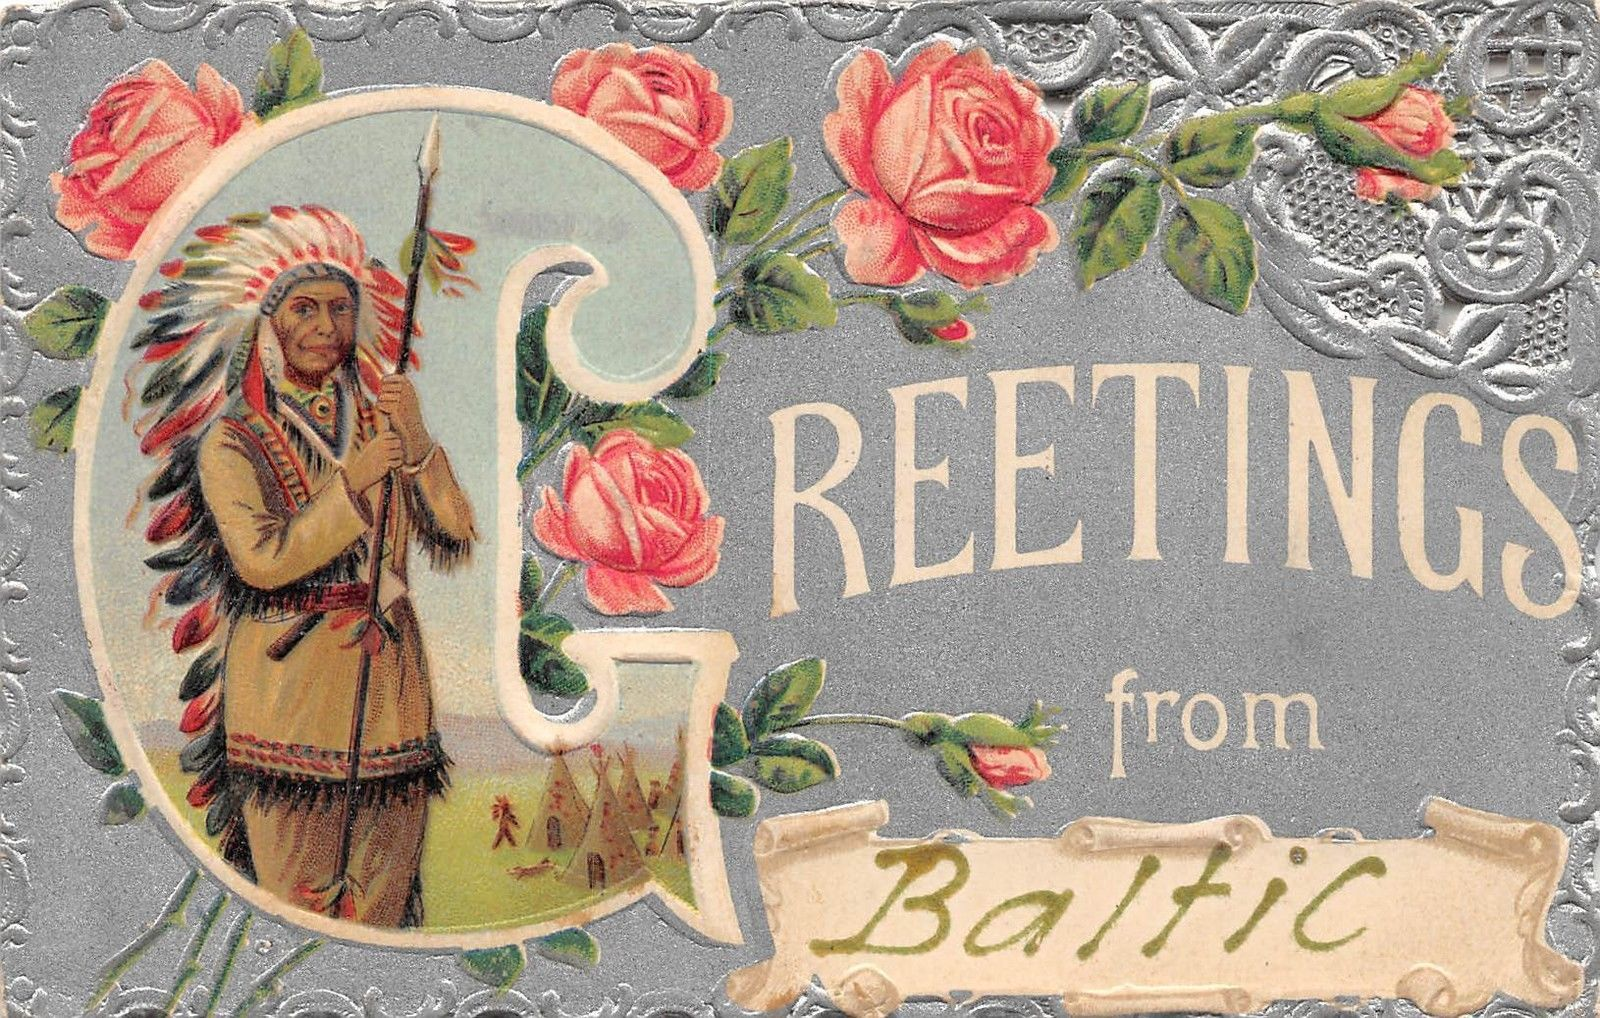 B61 Baltic Ohio Postcard 1910 Greetings From Baltic Native American